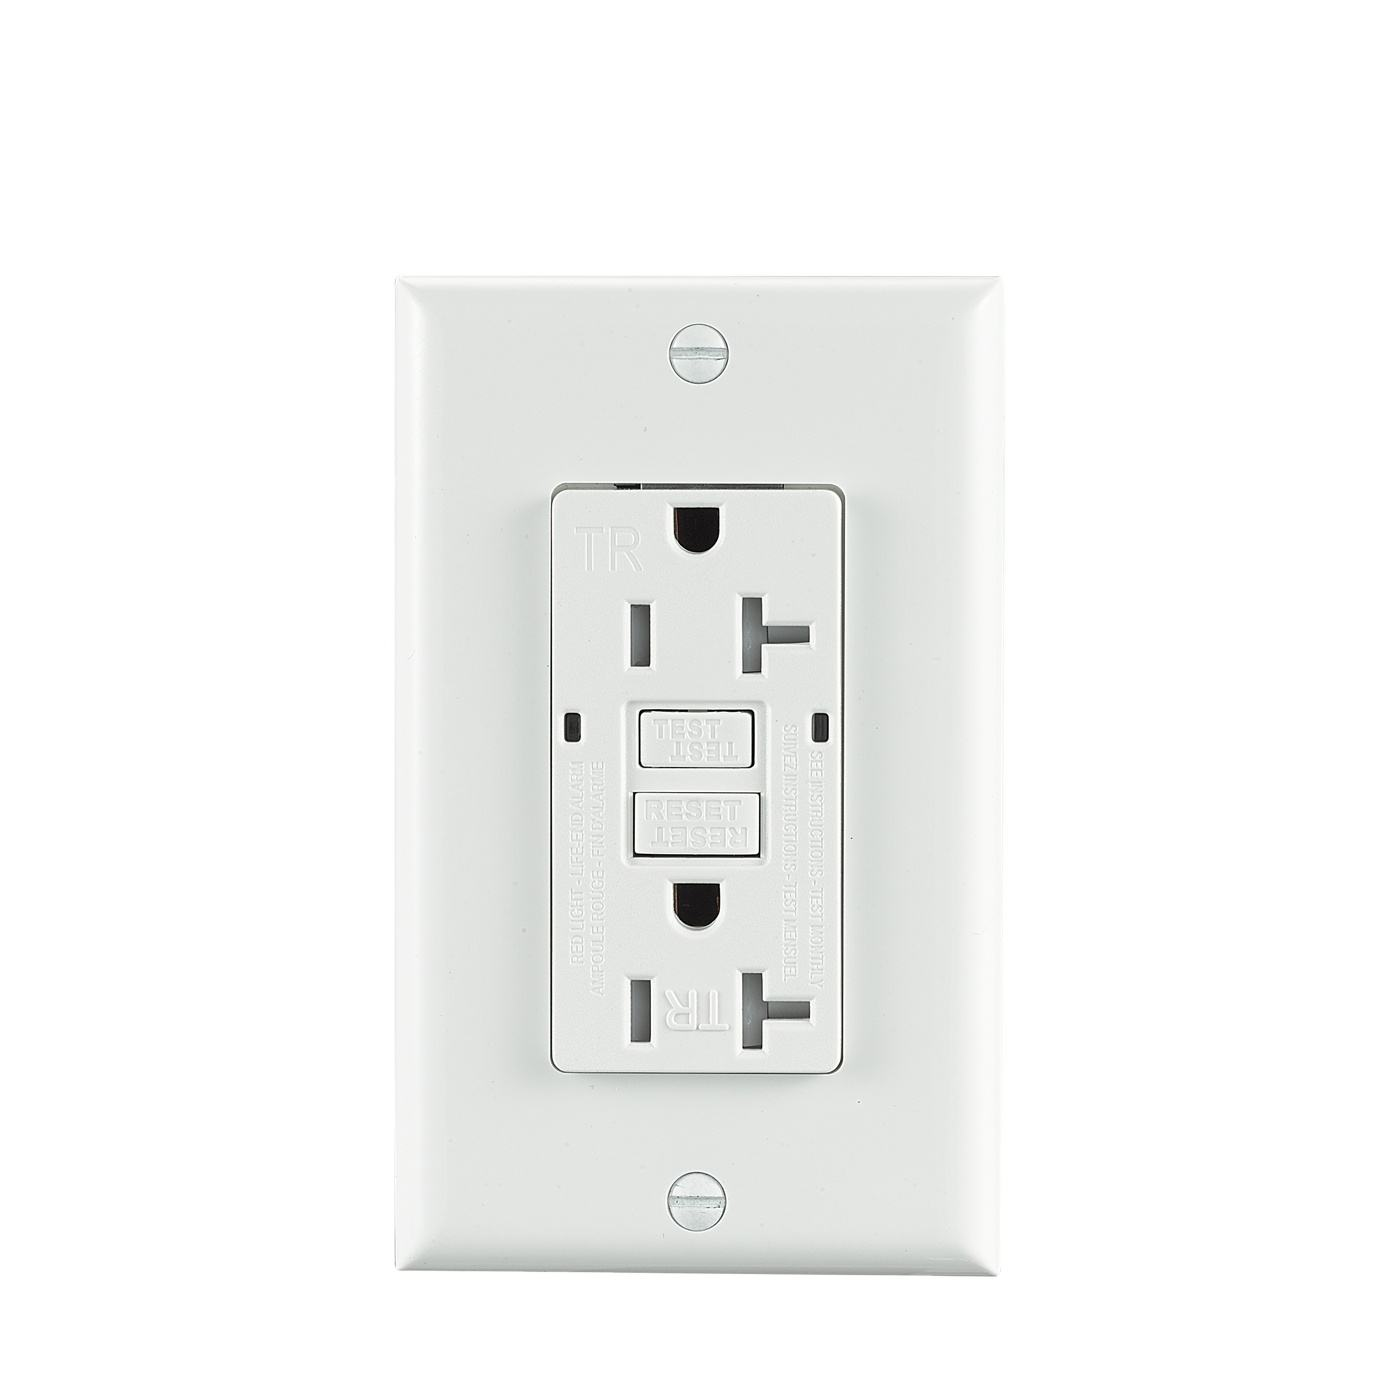 3GRCE Shouxin <span class=keywords><strong>GFCI</strong></span> Outlet/Recepatacle 20A 125V AC 60Hz Temper Resistant Self-Test UL943